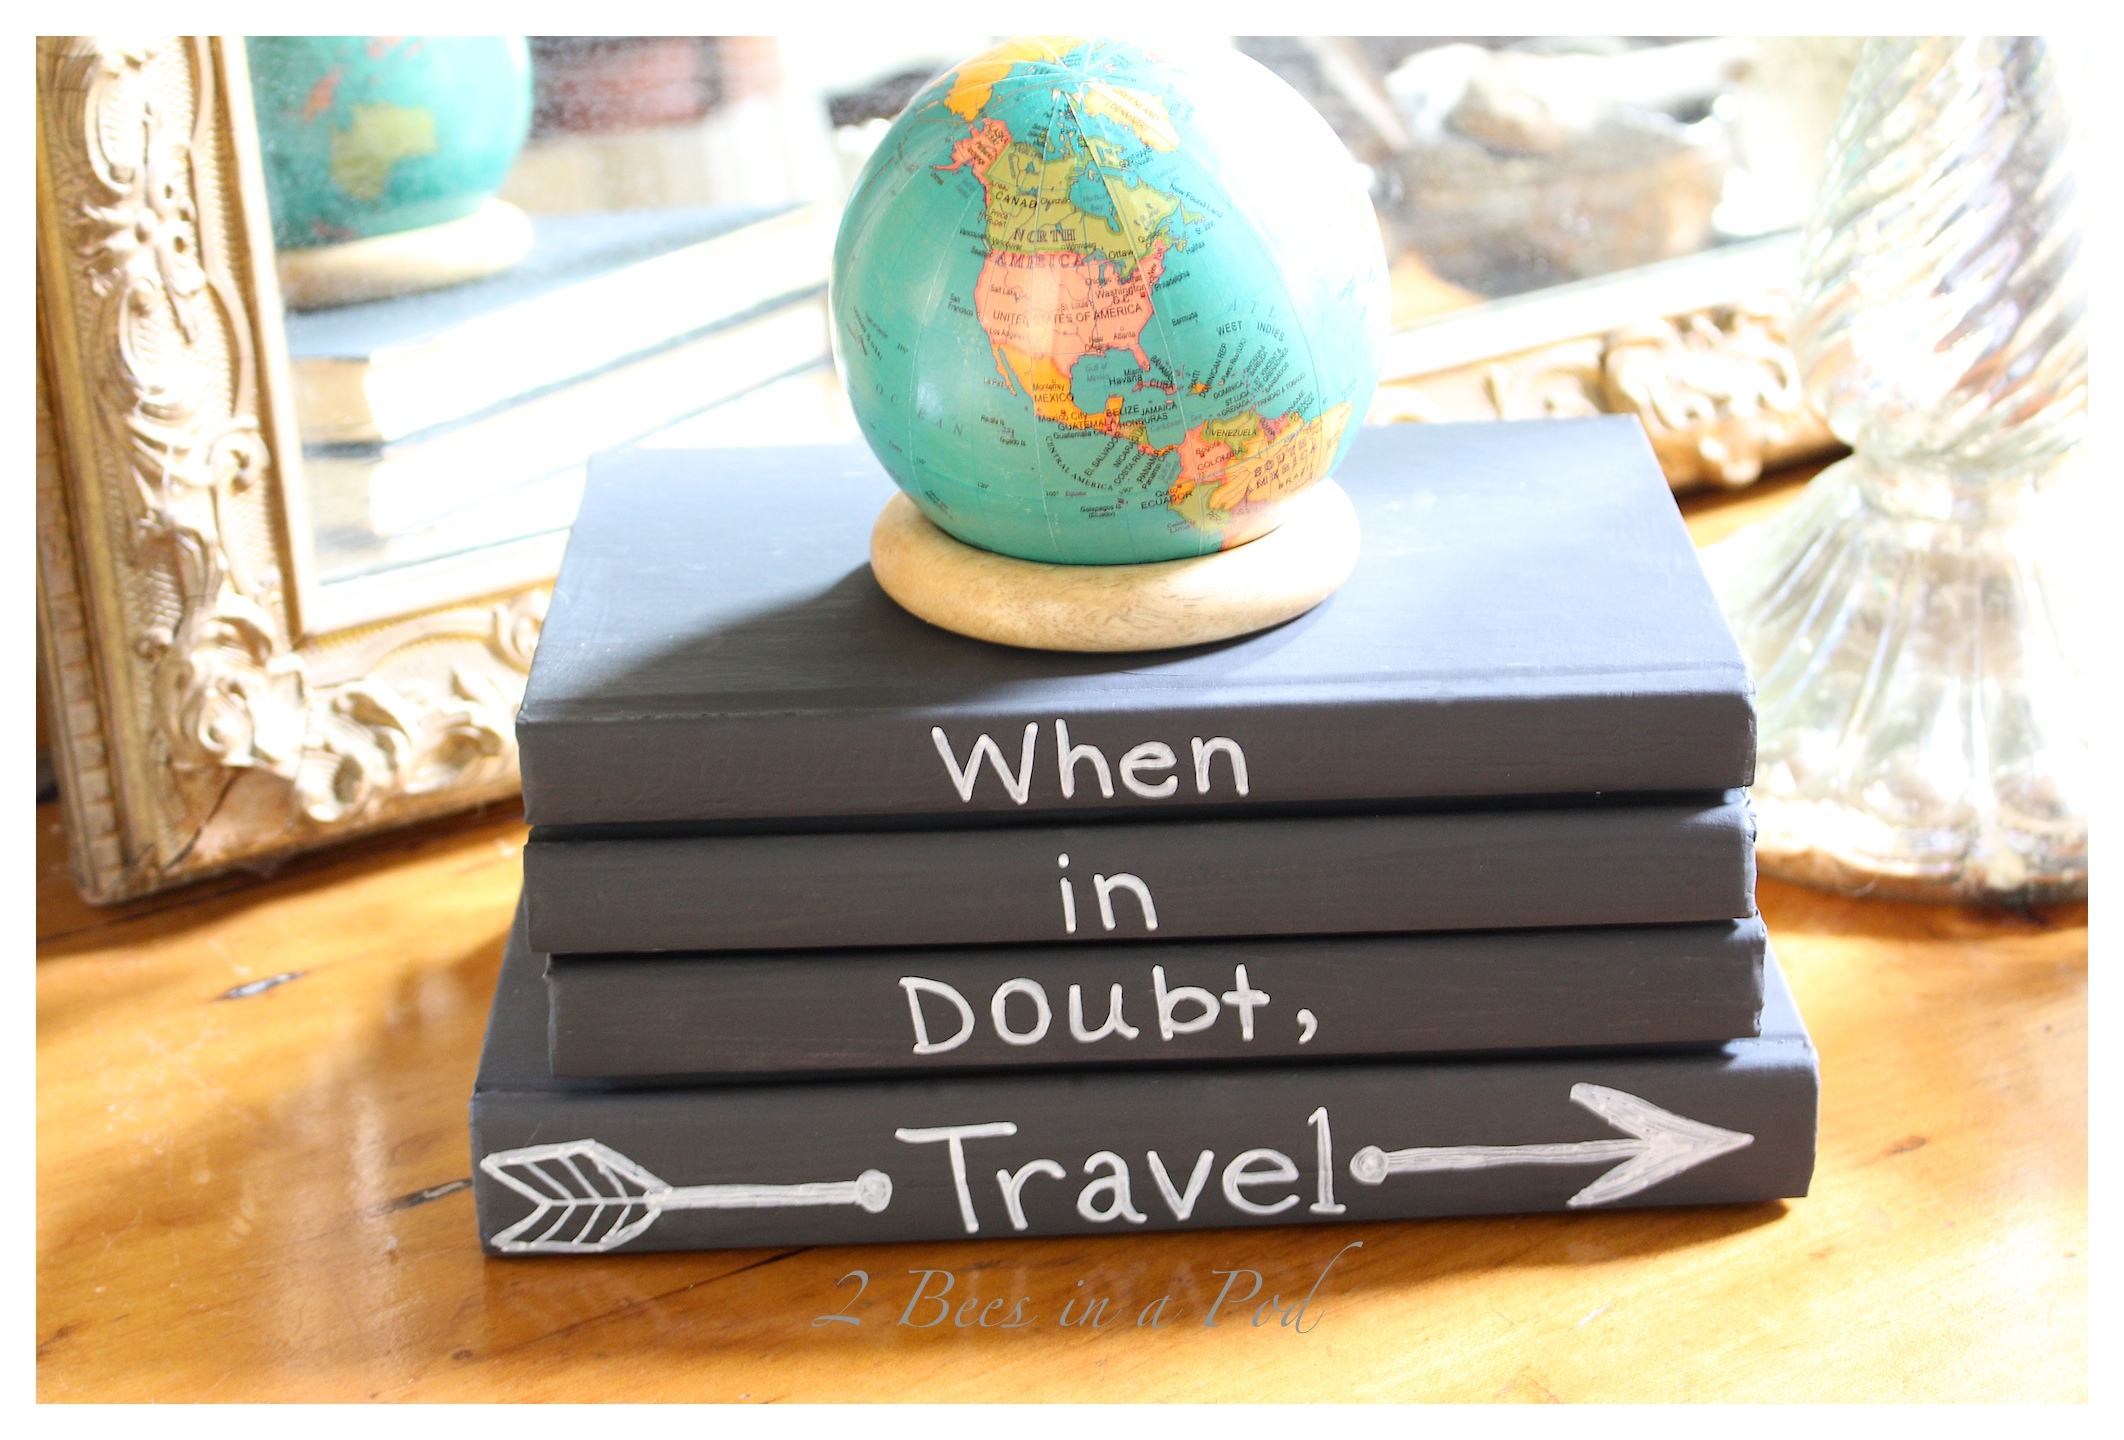 Chalk Painted Books and Favorite Quote